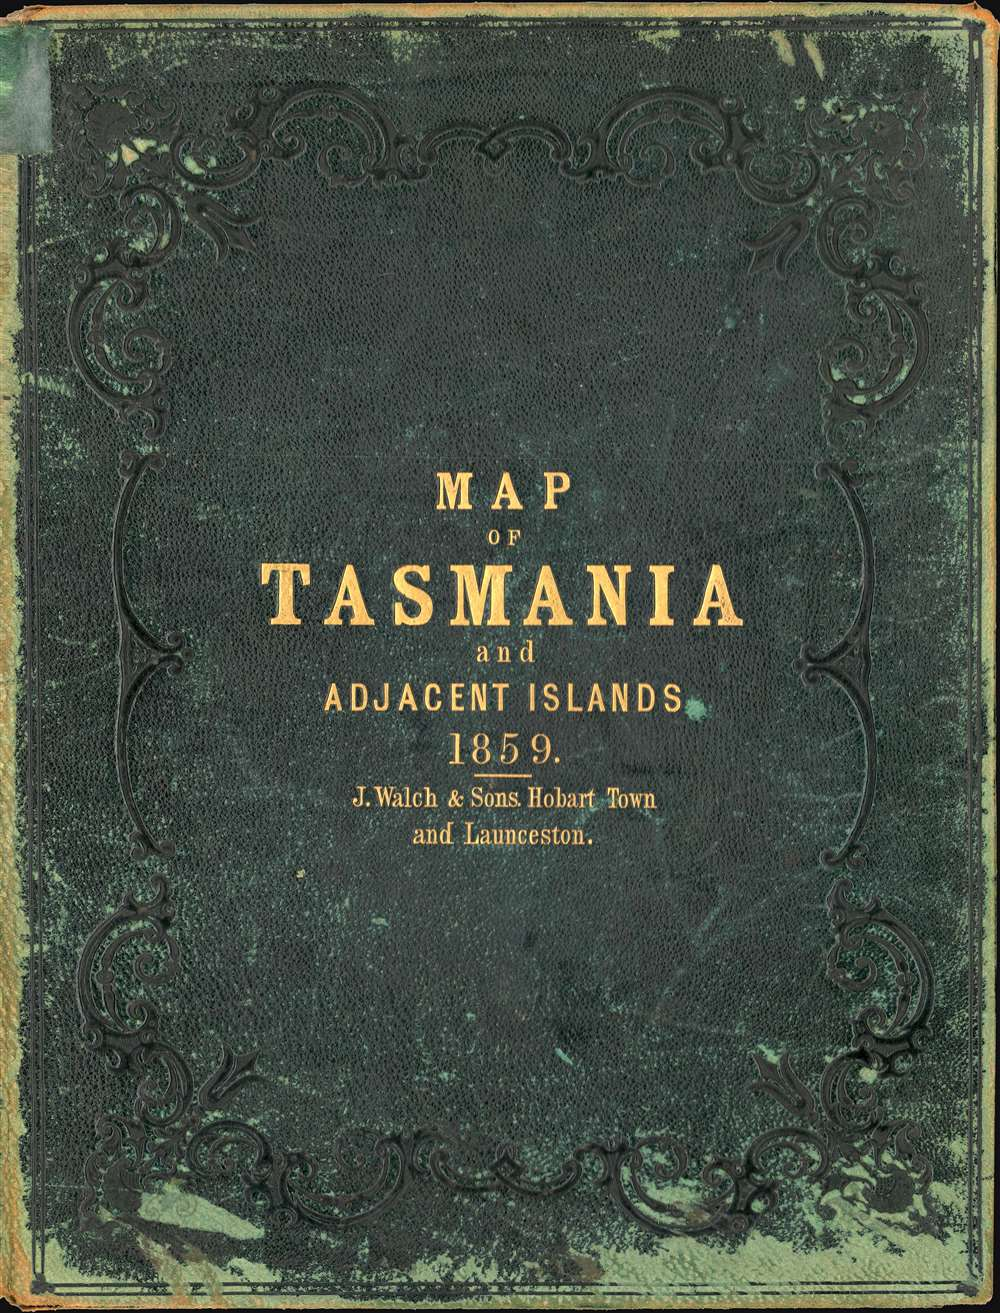 This Map of Tasmania in 1859, Sir Henry Edward Fox Young Knight Companion of the Most Honorable Order of the Bath Being Governor in Chief, and teh Honble. Francis Smigh Attorney General being Premier is dedicated to his Excellency and the Parliament by James Sprent, Surveyor General. - Alternate View 6